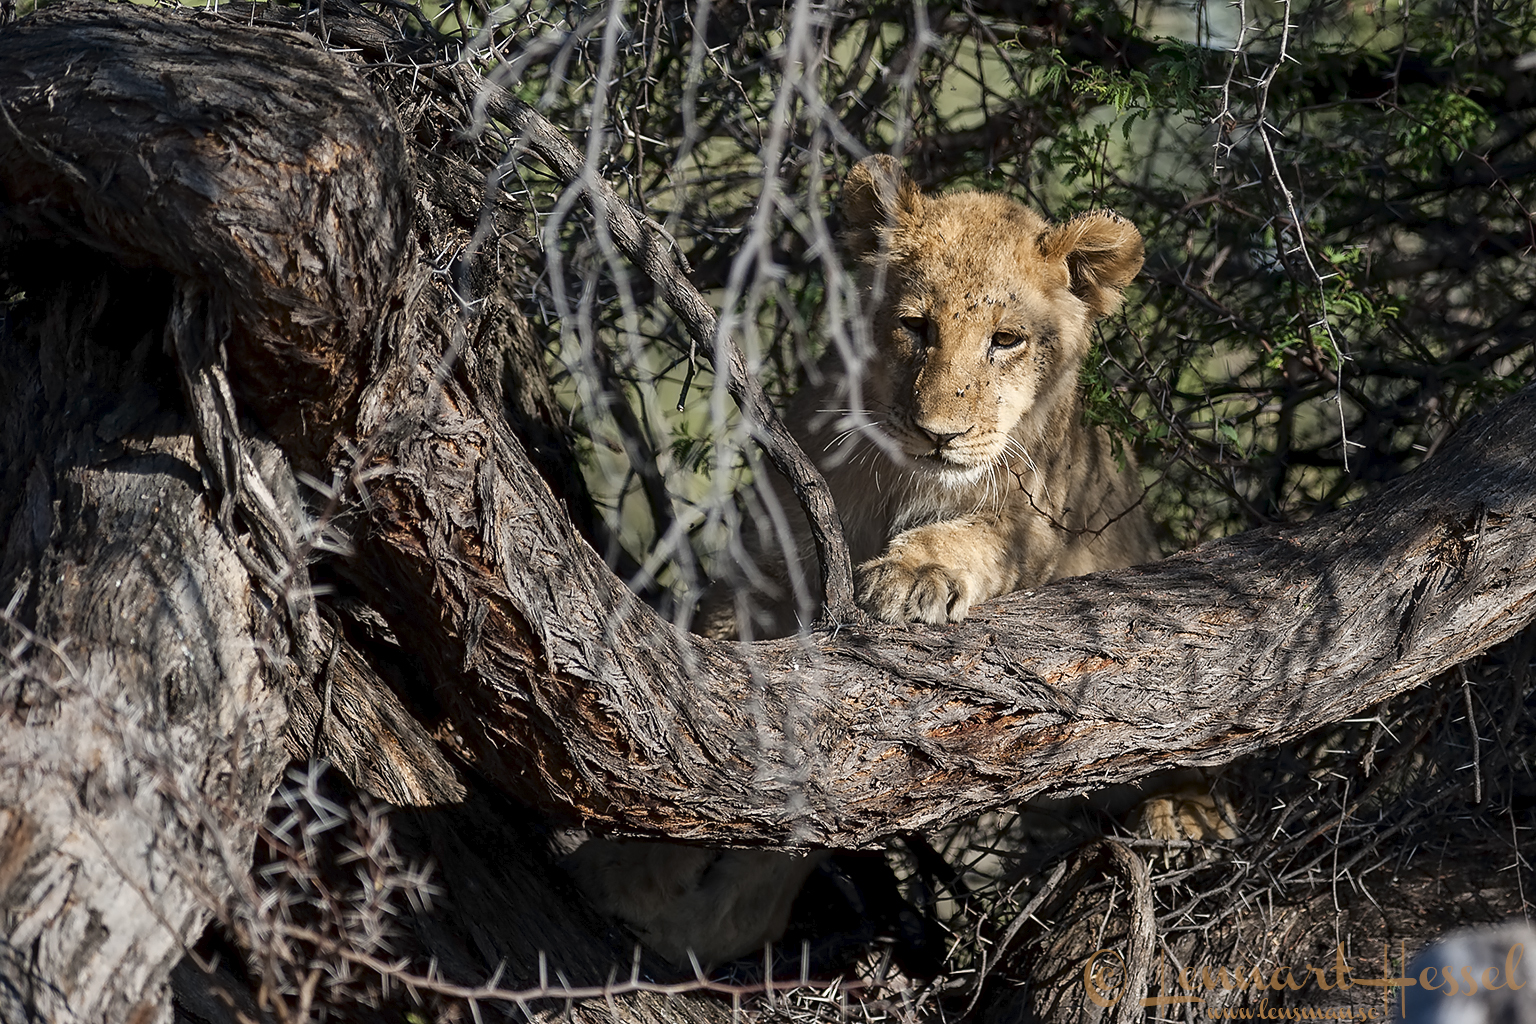 Lion cub in Moremi Game Reserve, Botswana safari